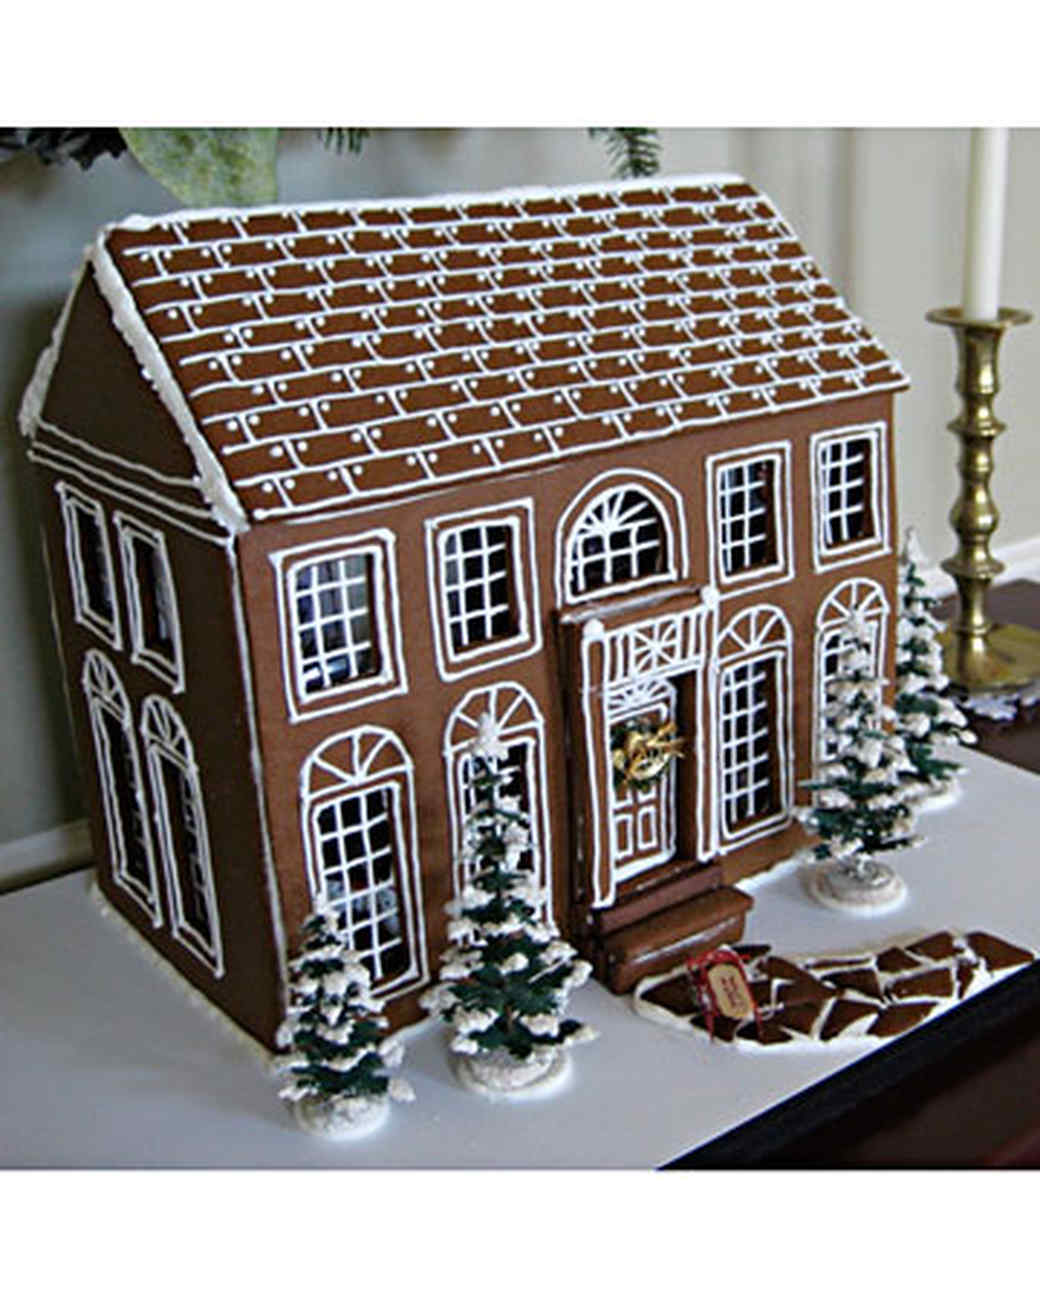 Your Best Gingerbread Houses | Martha Stewart Gingerbread House Box Design on candy box, fireplace box, halloween box, biscotti box, tiramisu box, pig roast box, butterfly box, text box, cookie dough box, gumbo box, ornament box, church box, brownies box, panettone box, giveaway box, icing box, ginger box, cupcake house box, fudge box, rose box,